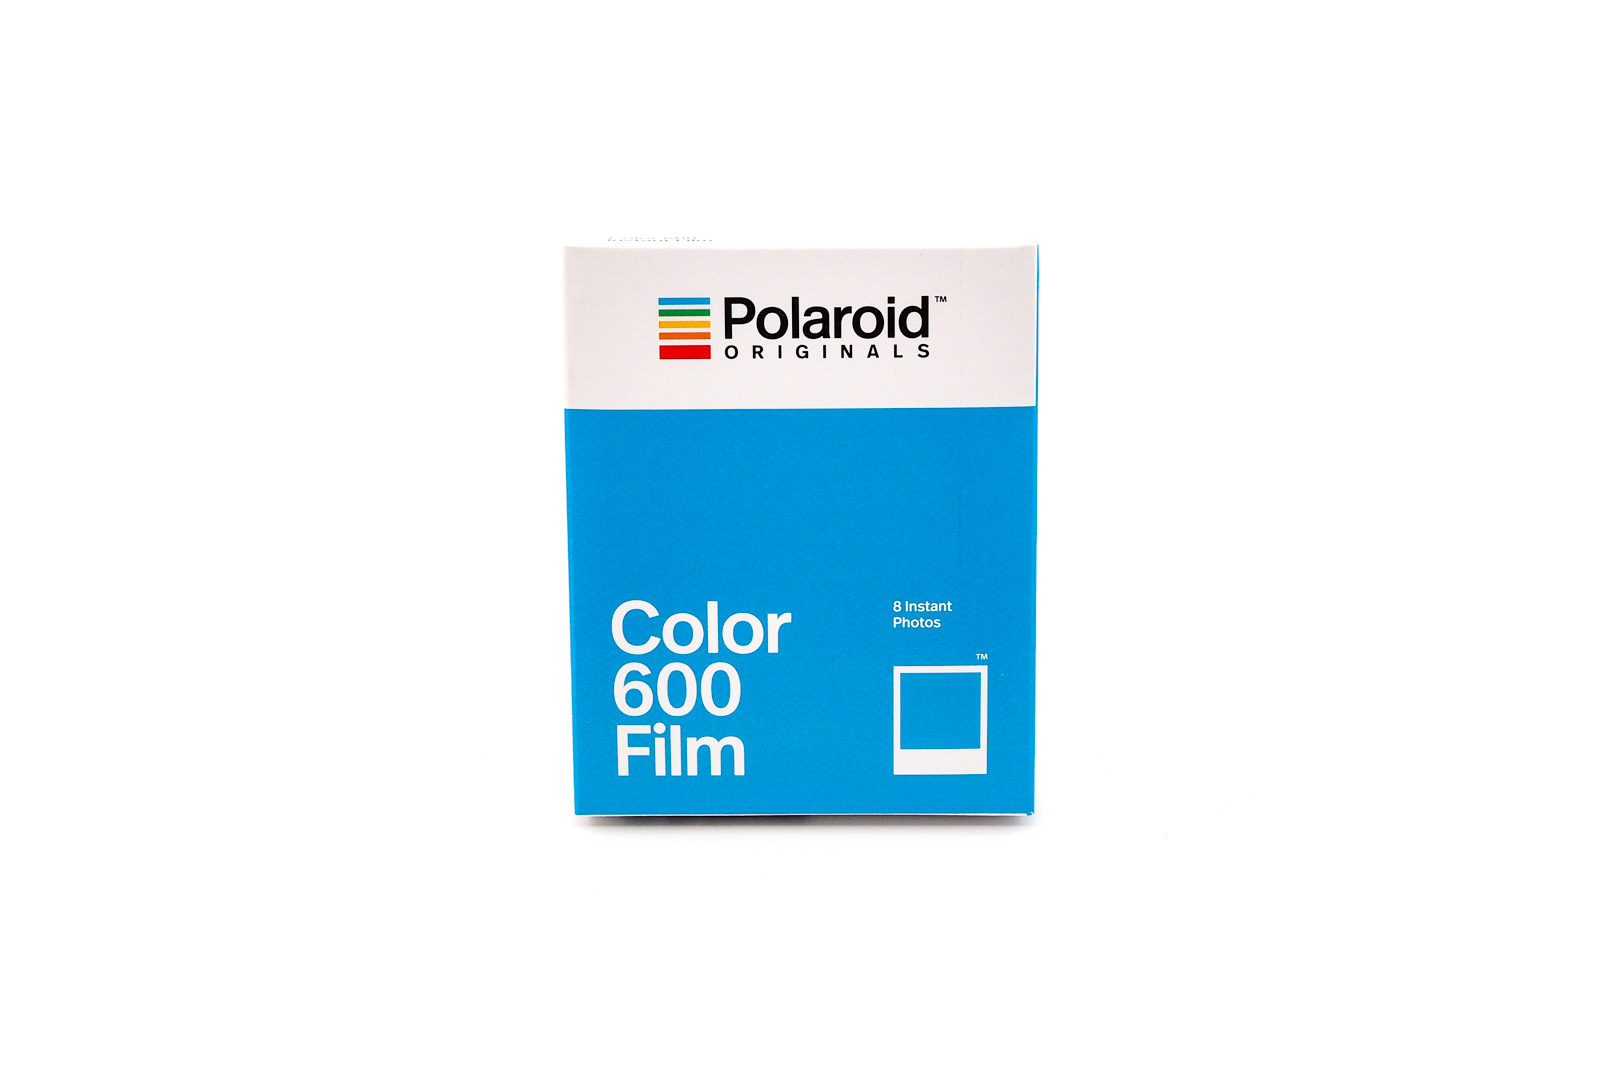 Polaroid originals 600 farbe